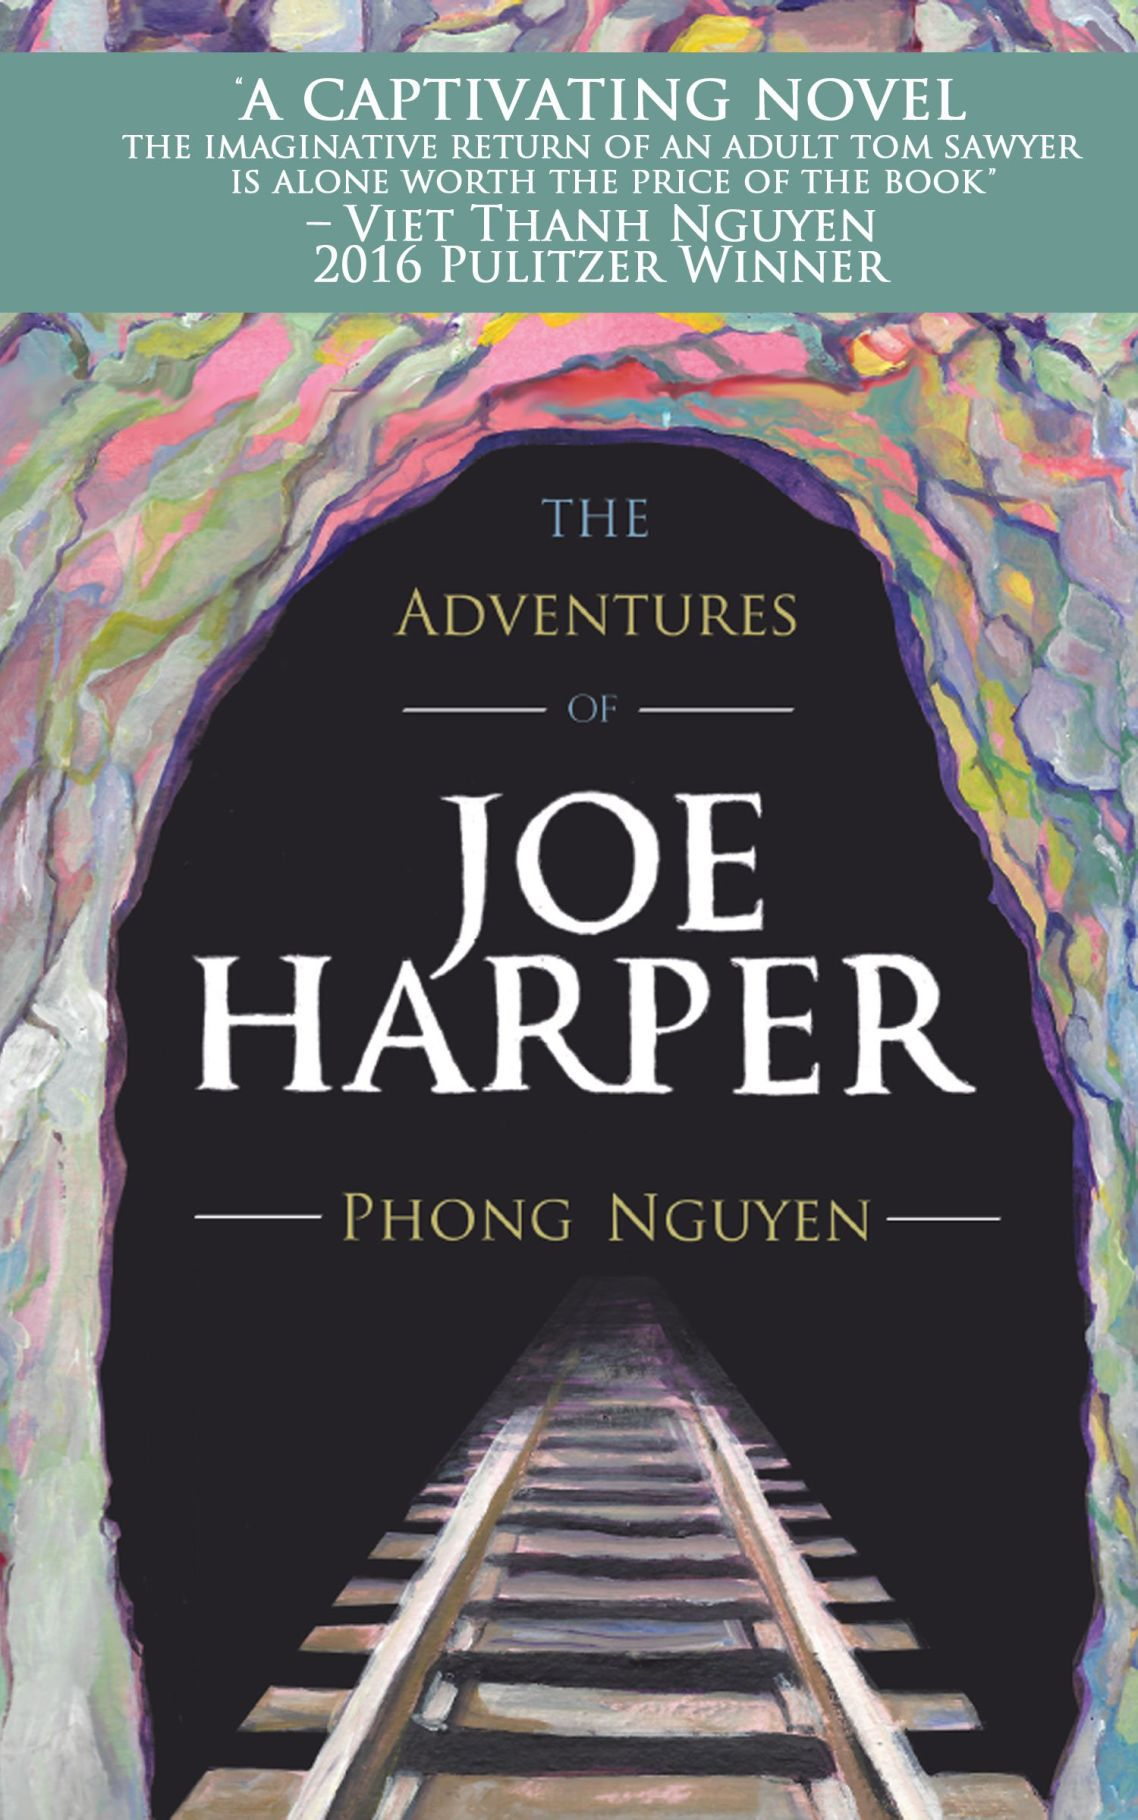 The Adventures Of Joe Harper' Revisits Tom Sawyer & Co 20 Years On